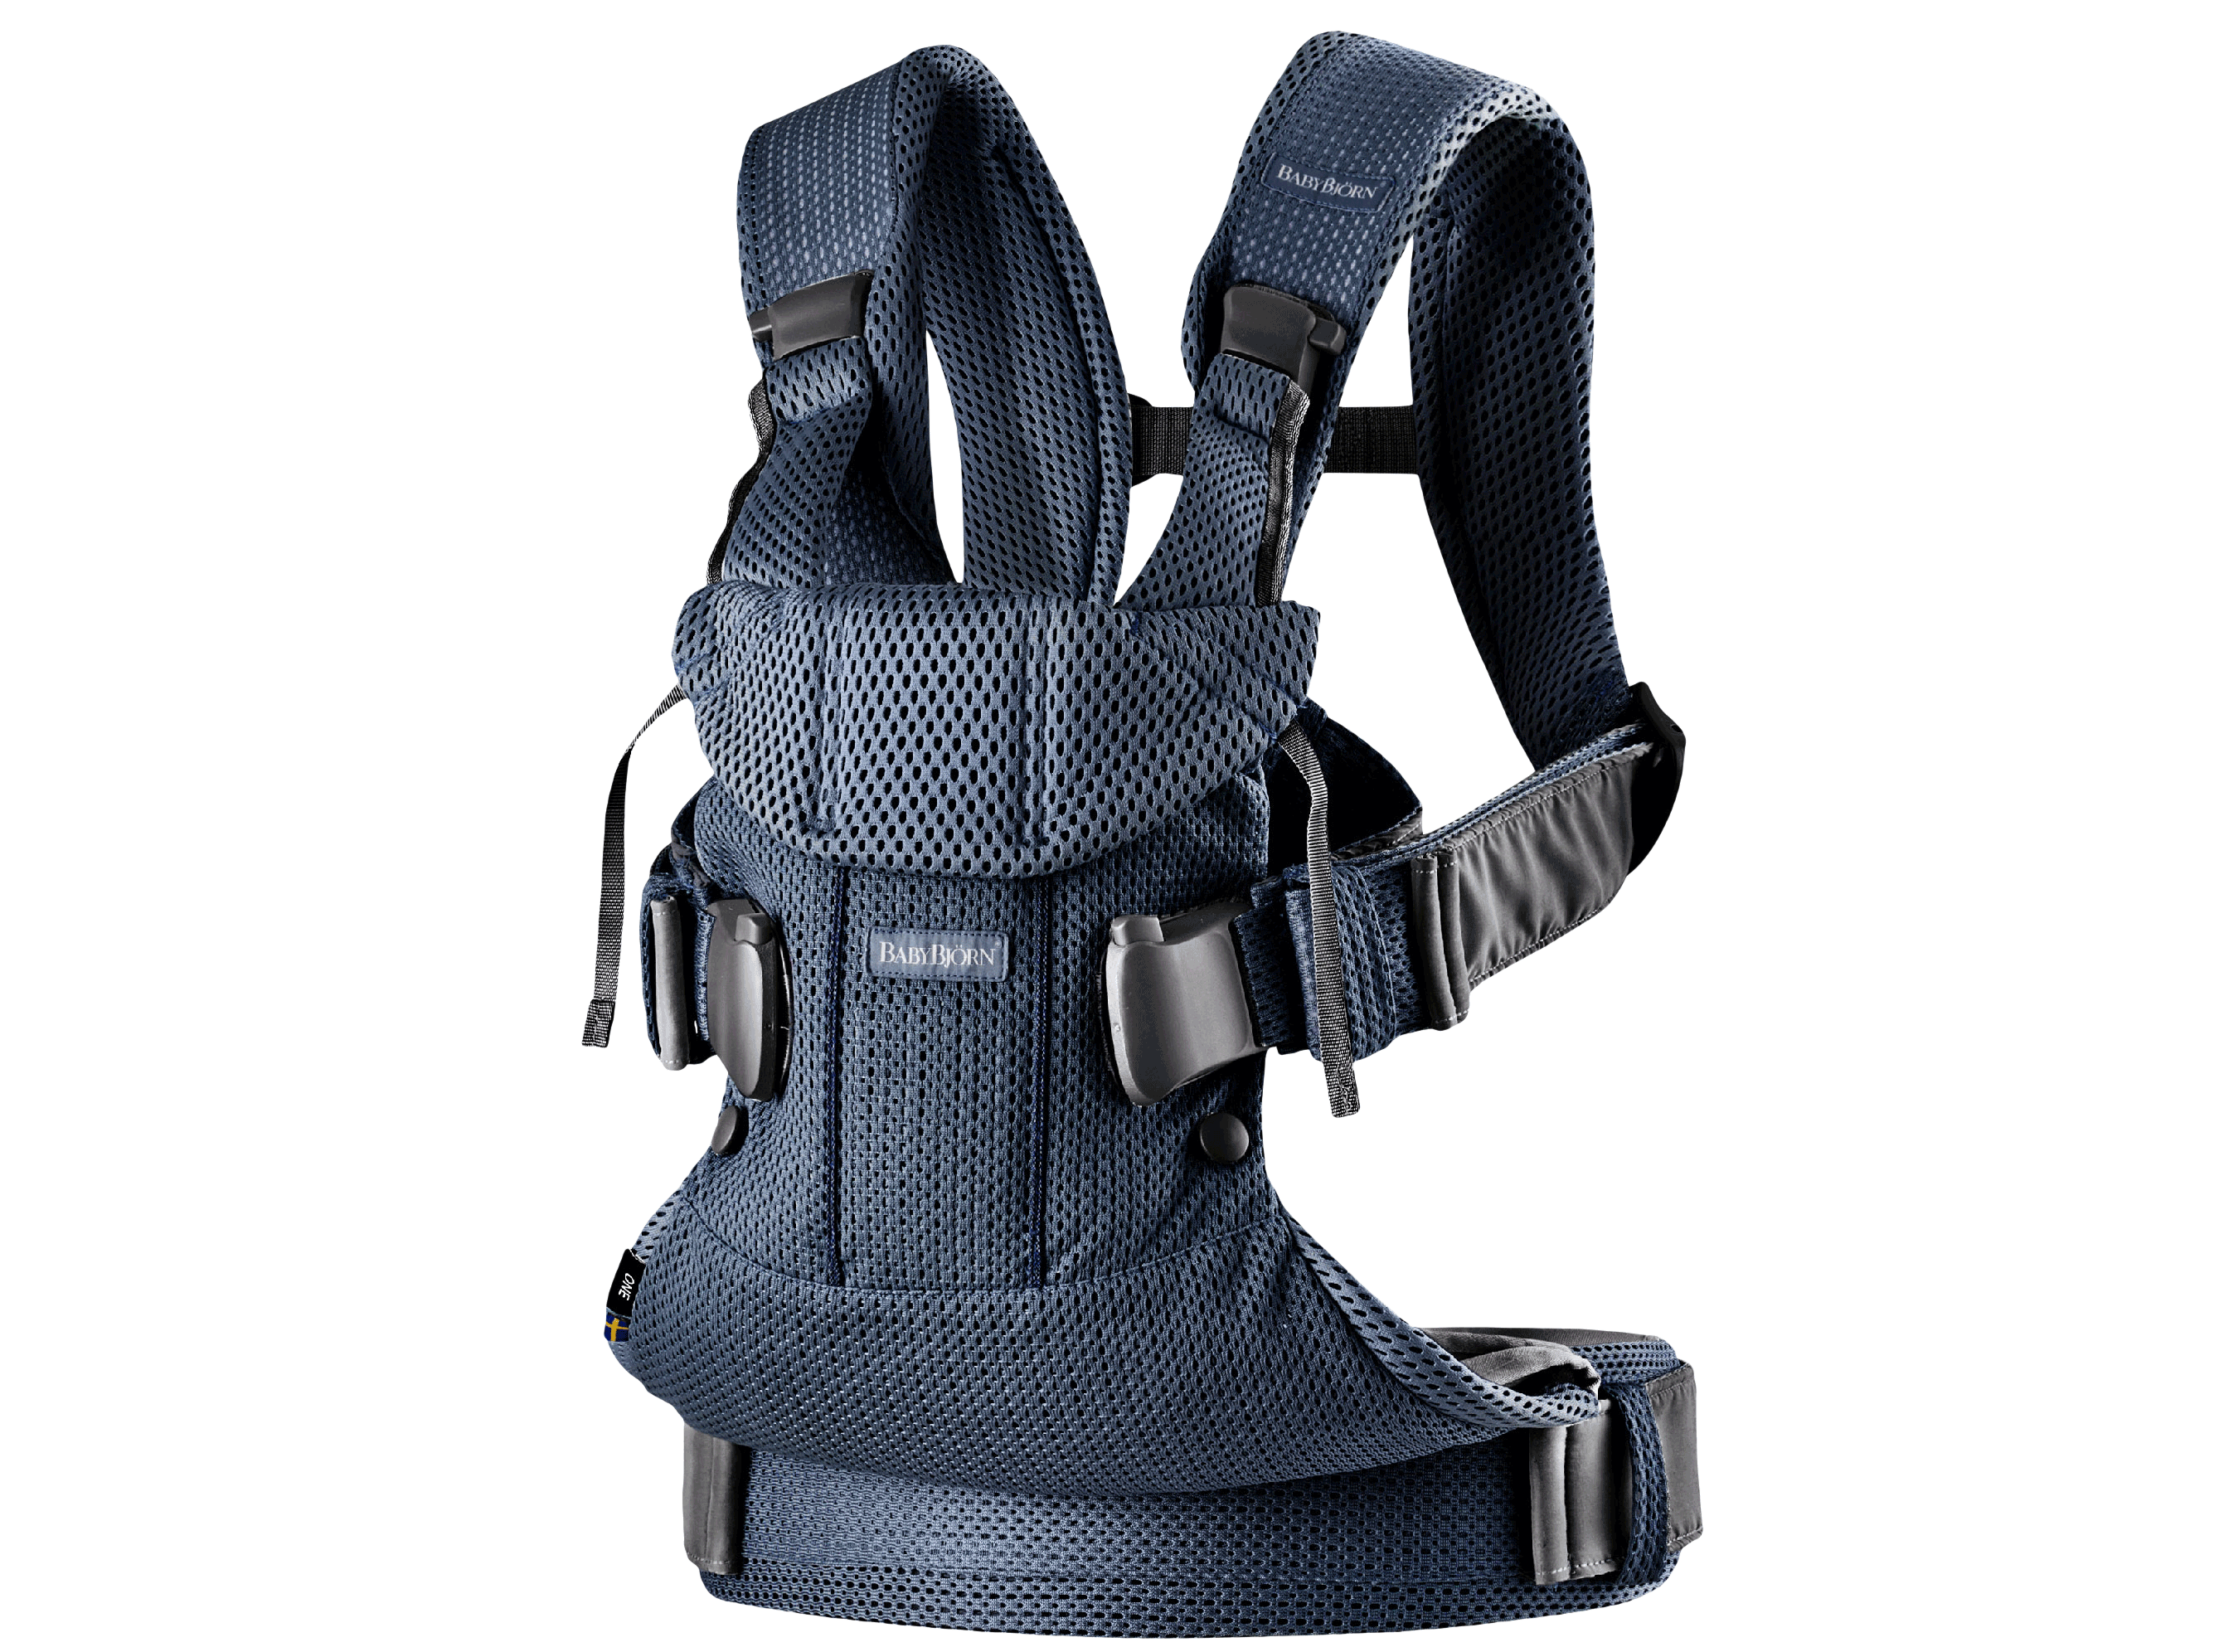 Baby Carrier One Air in navy blue mesh, an ergonomic, soft and flexible baby carrier that can be used from new born to 3 years old, including front facing and back carrying.